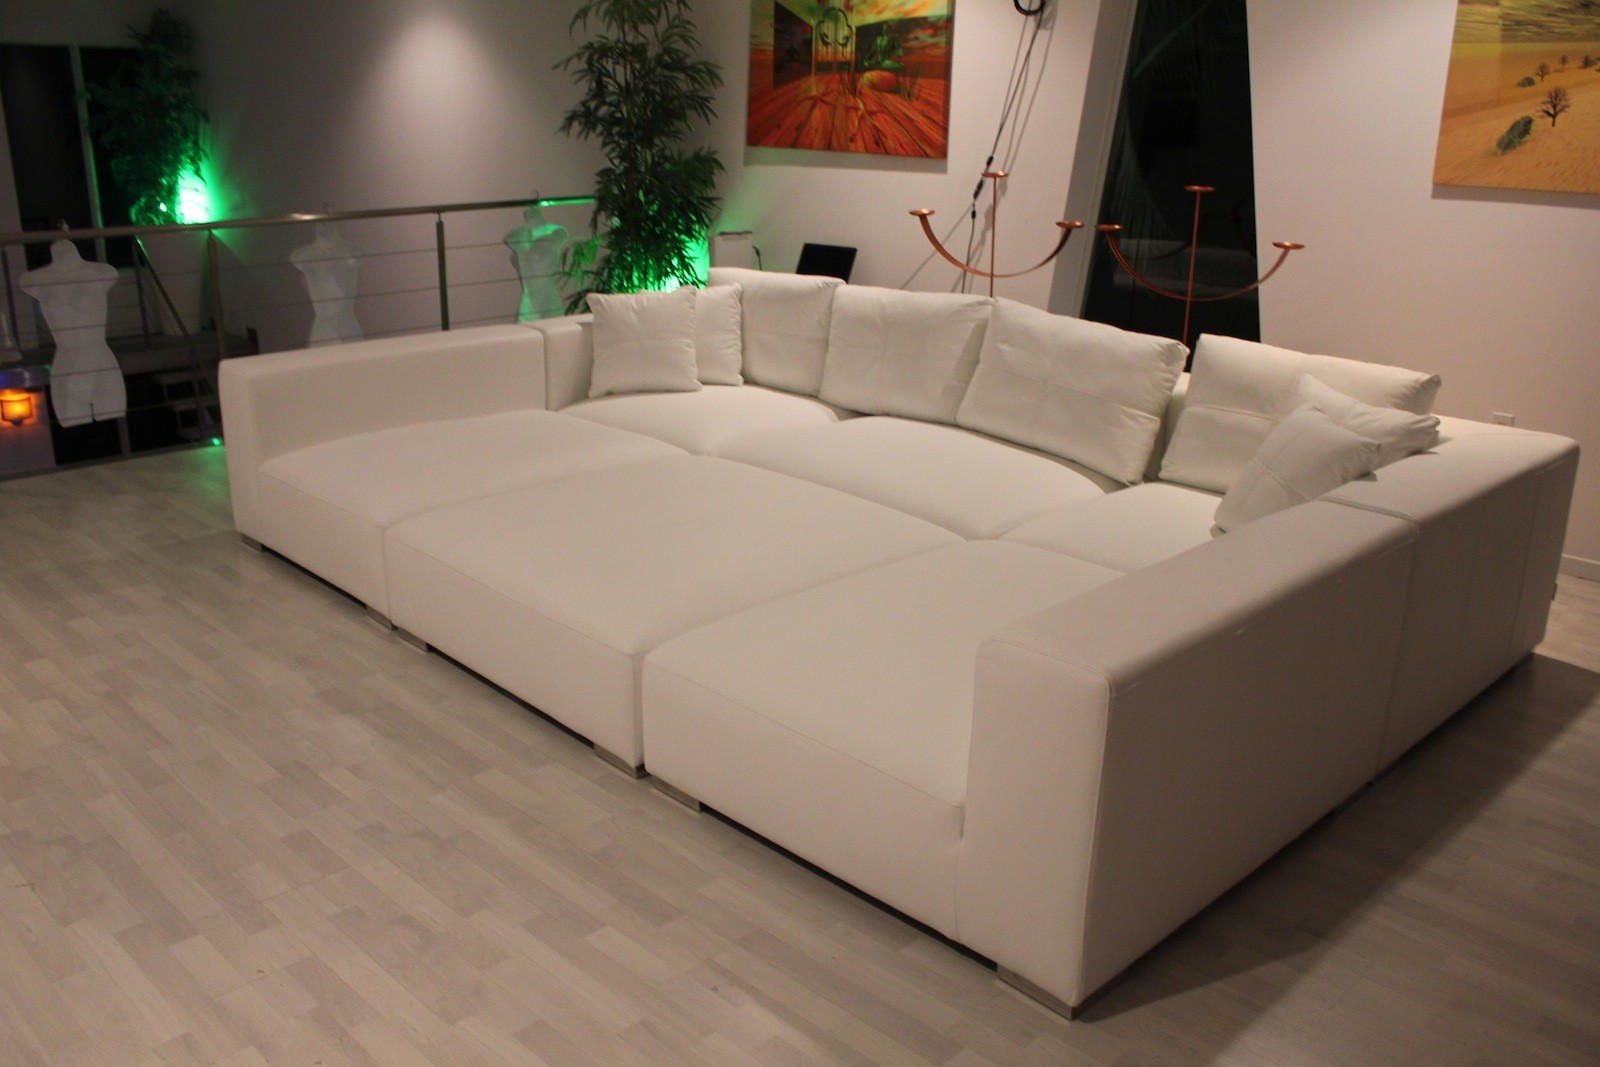 Fancy Sofa Pit 39 In Sofa Design Ideas with Sofa Pit